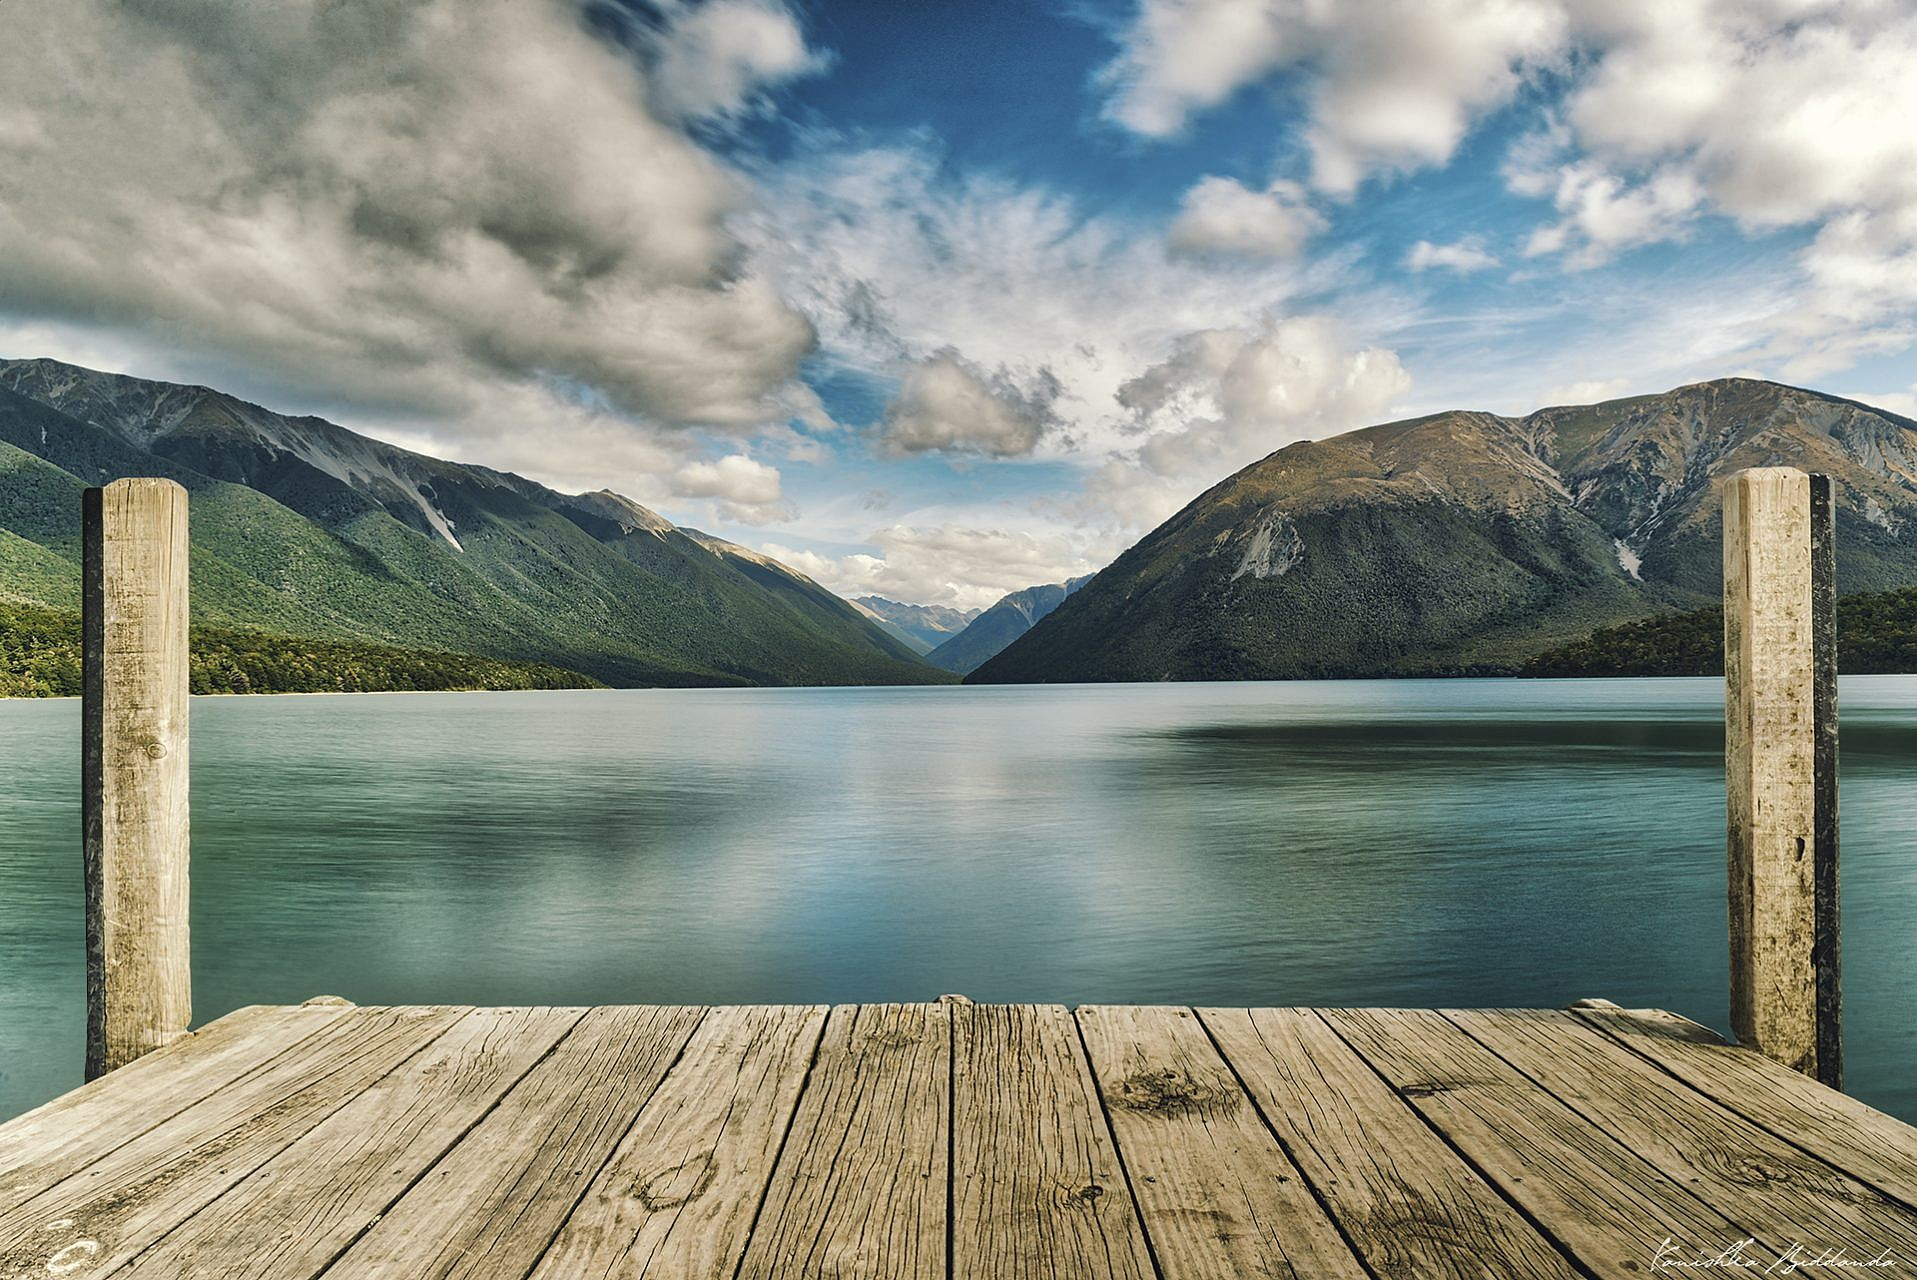 A serene day on Nelson Lake in the South Island of New Zealand.